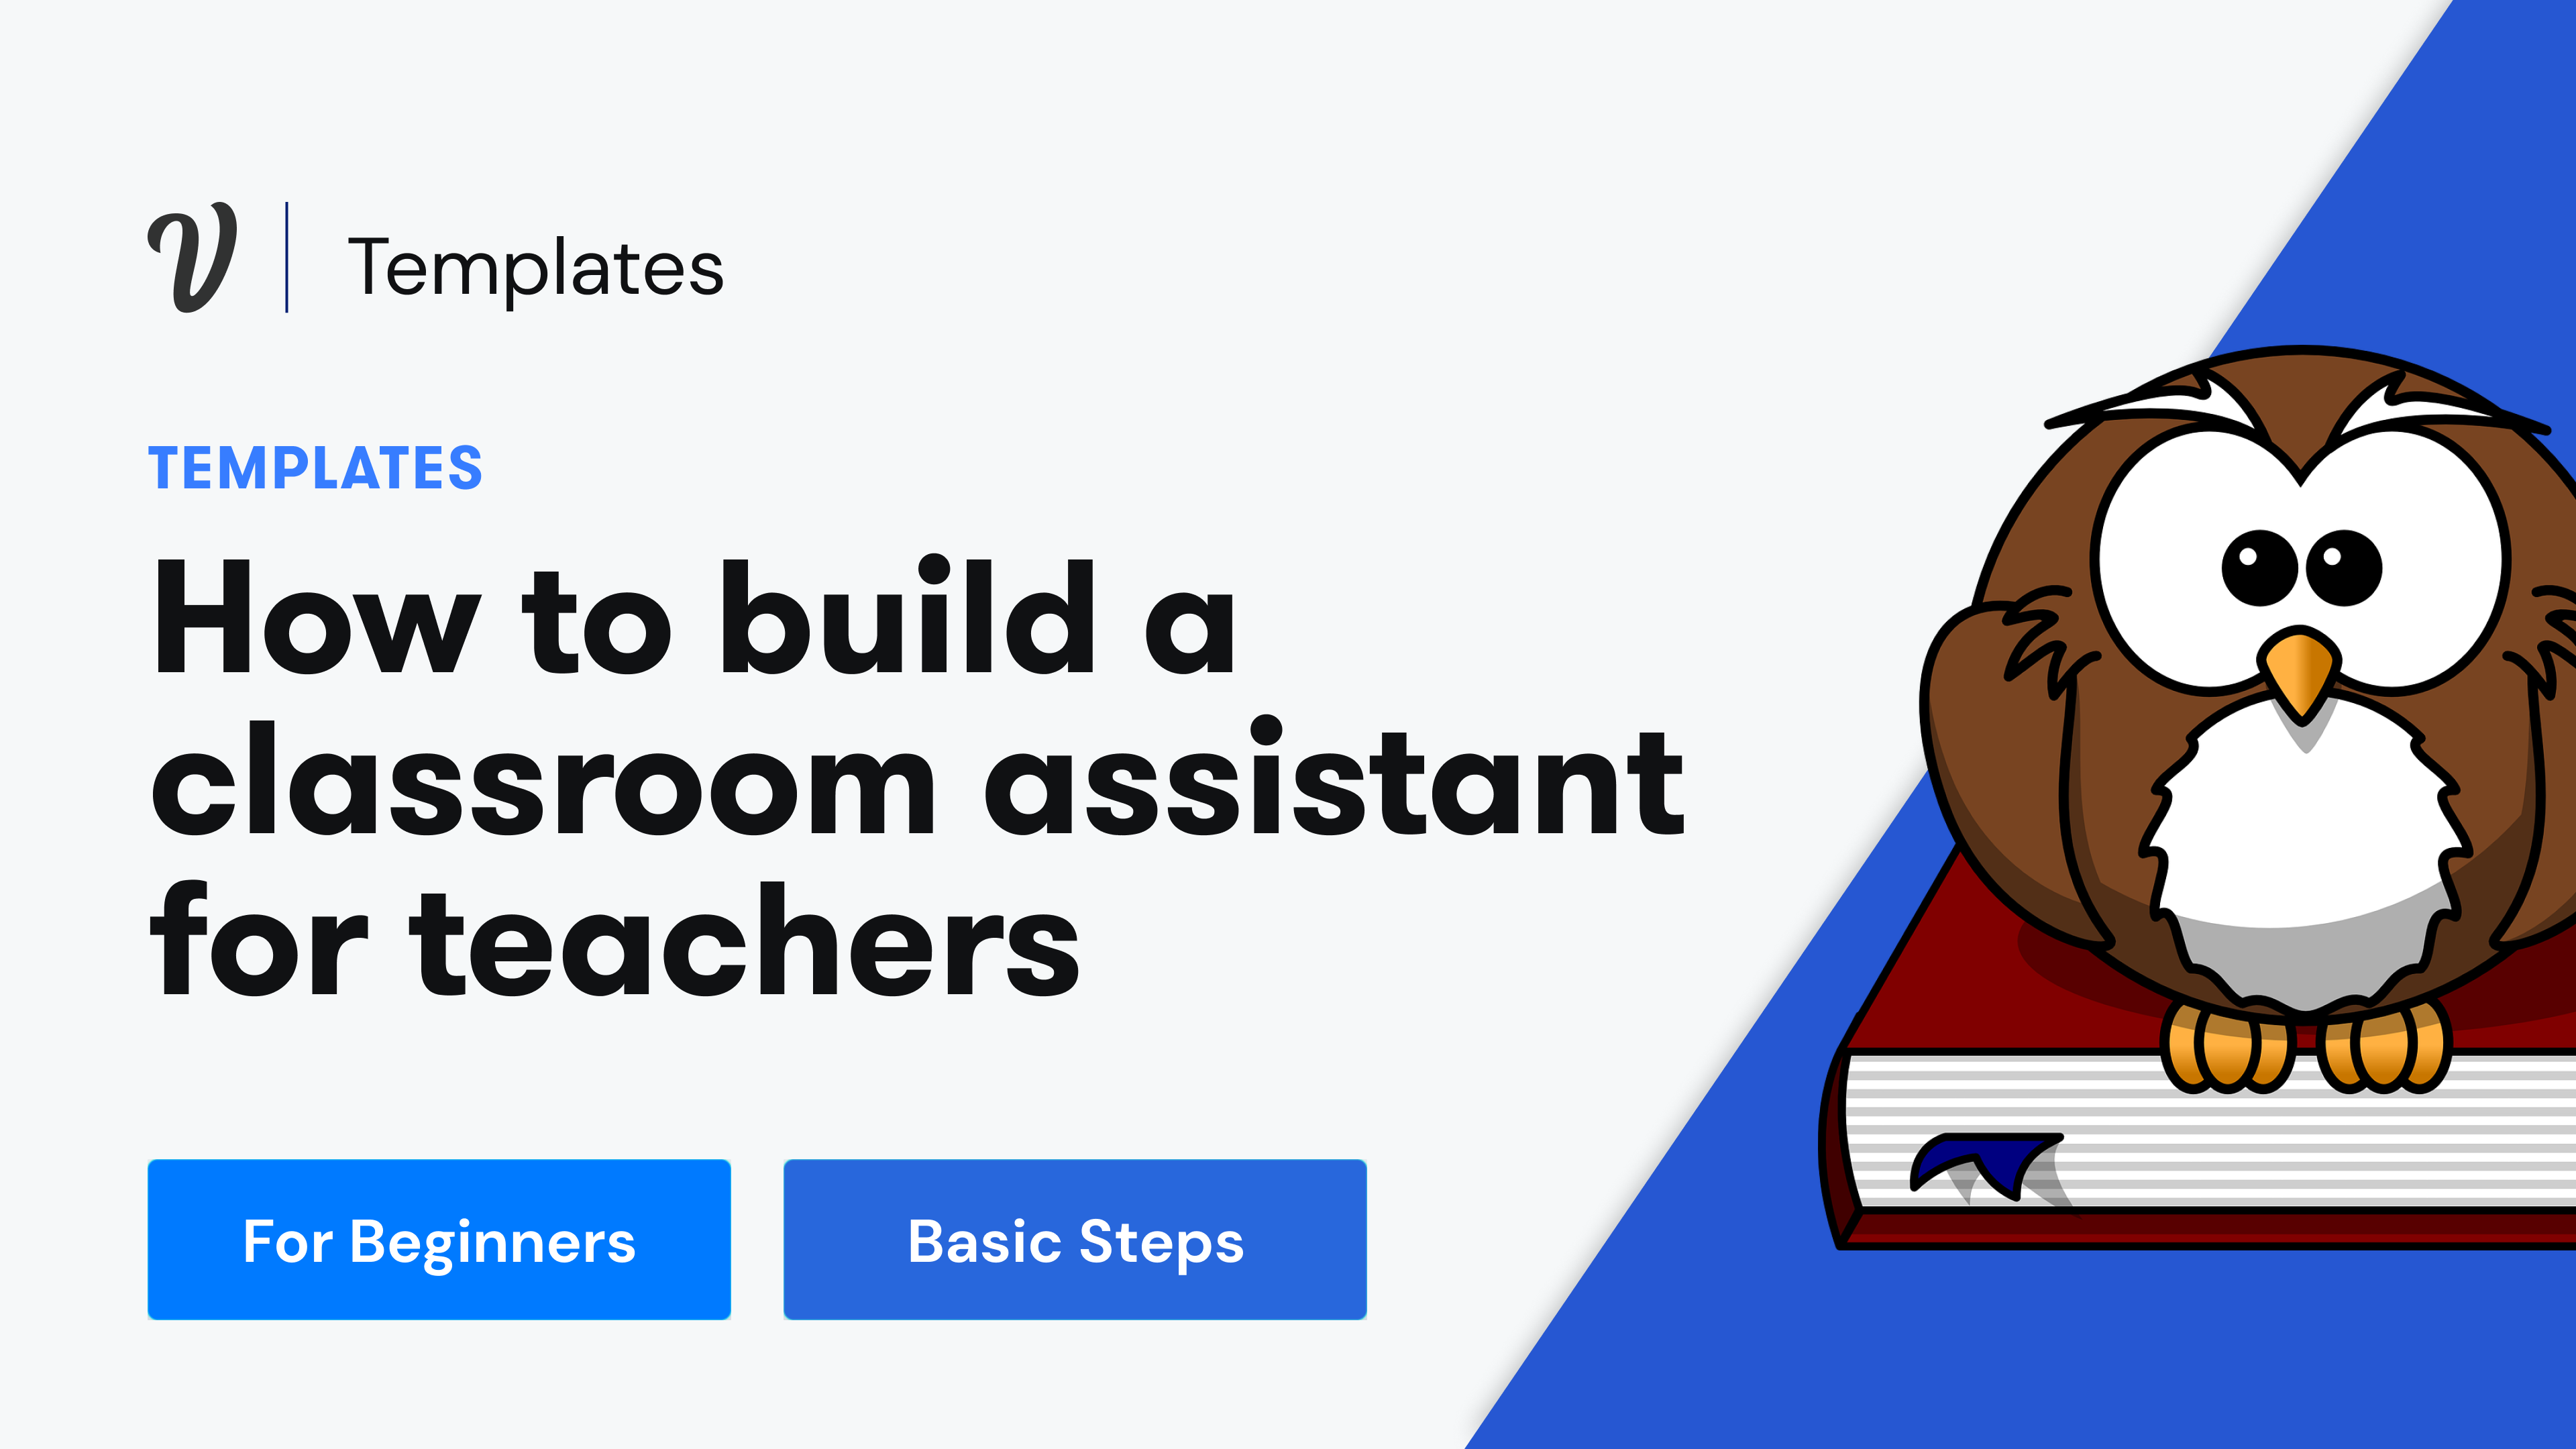 How to build a classroom assistant for teachers